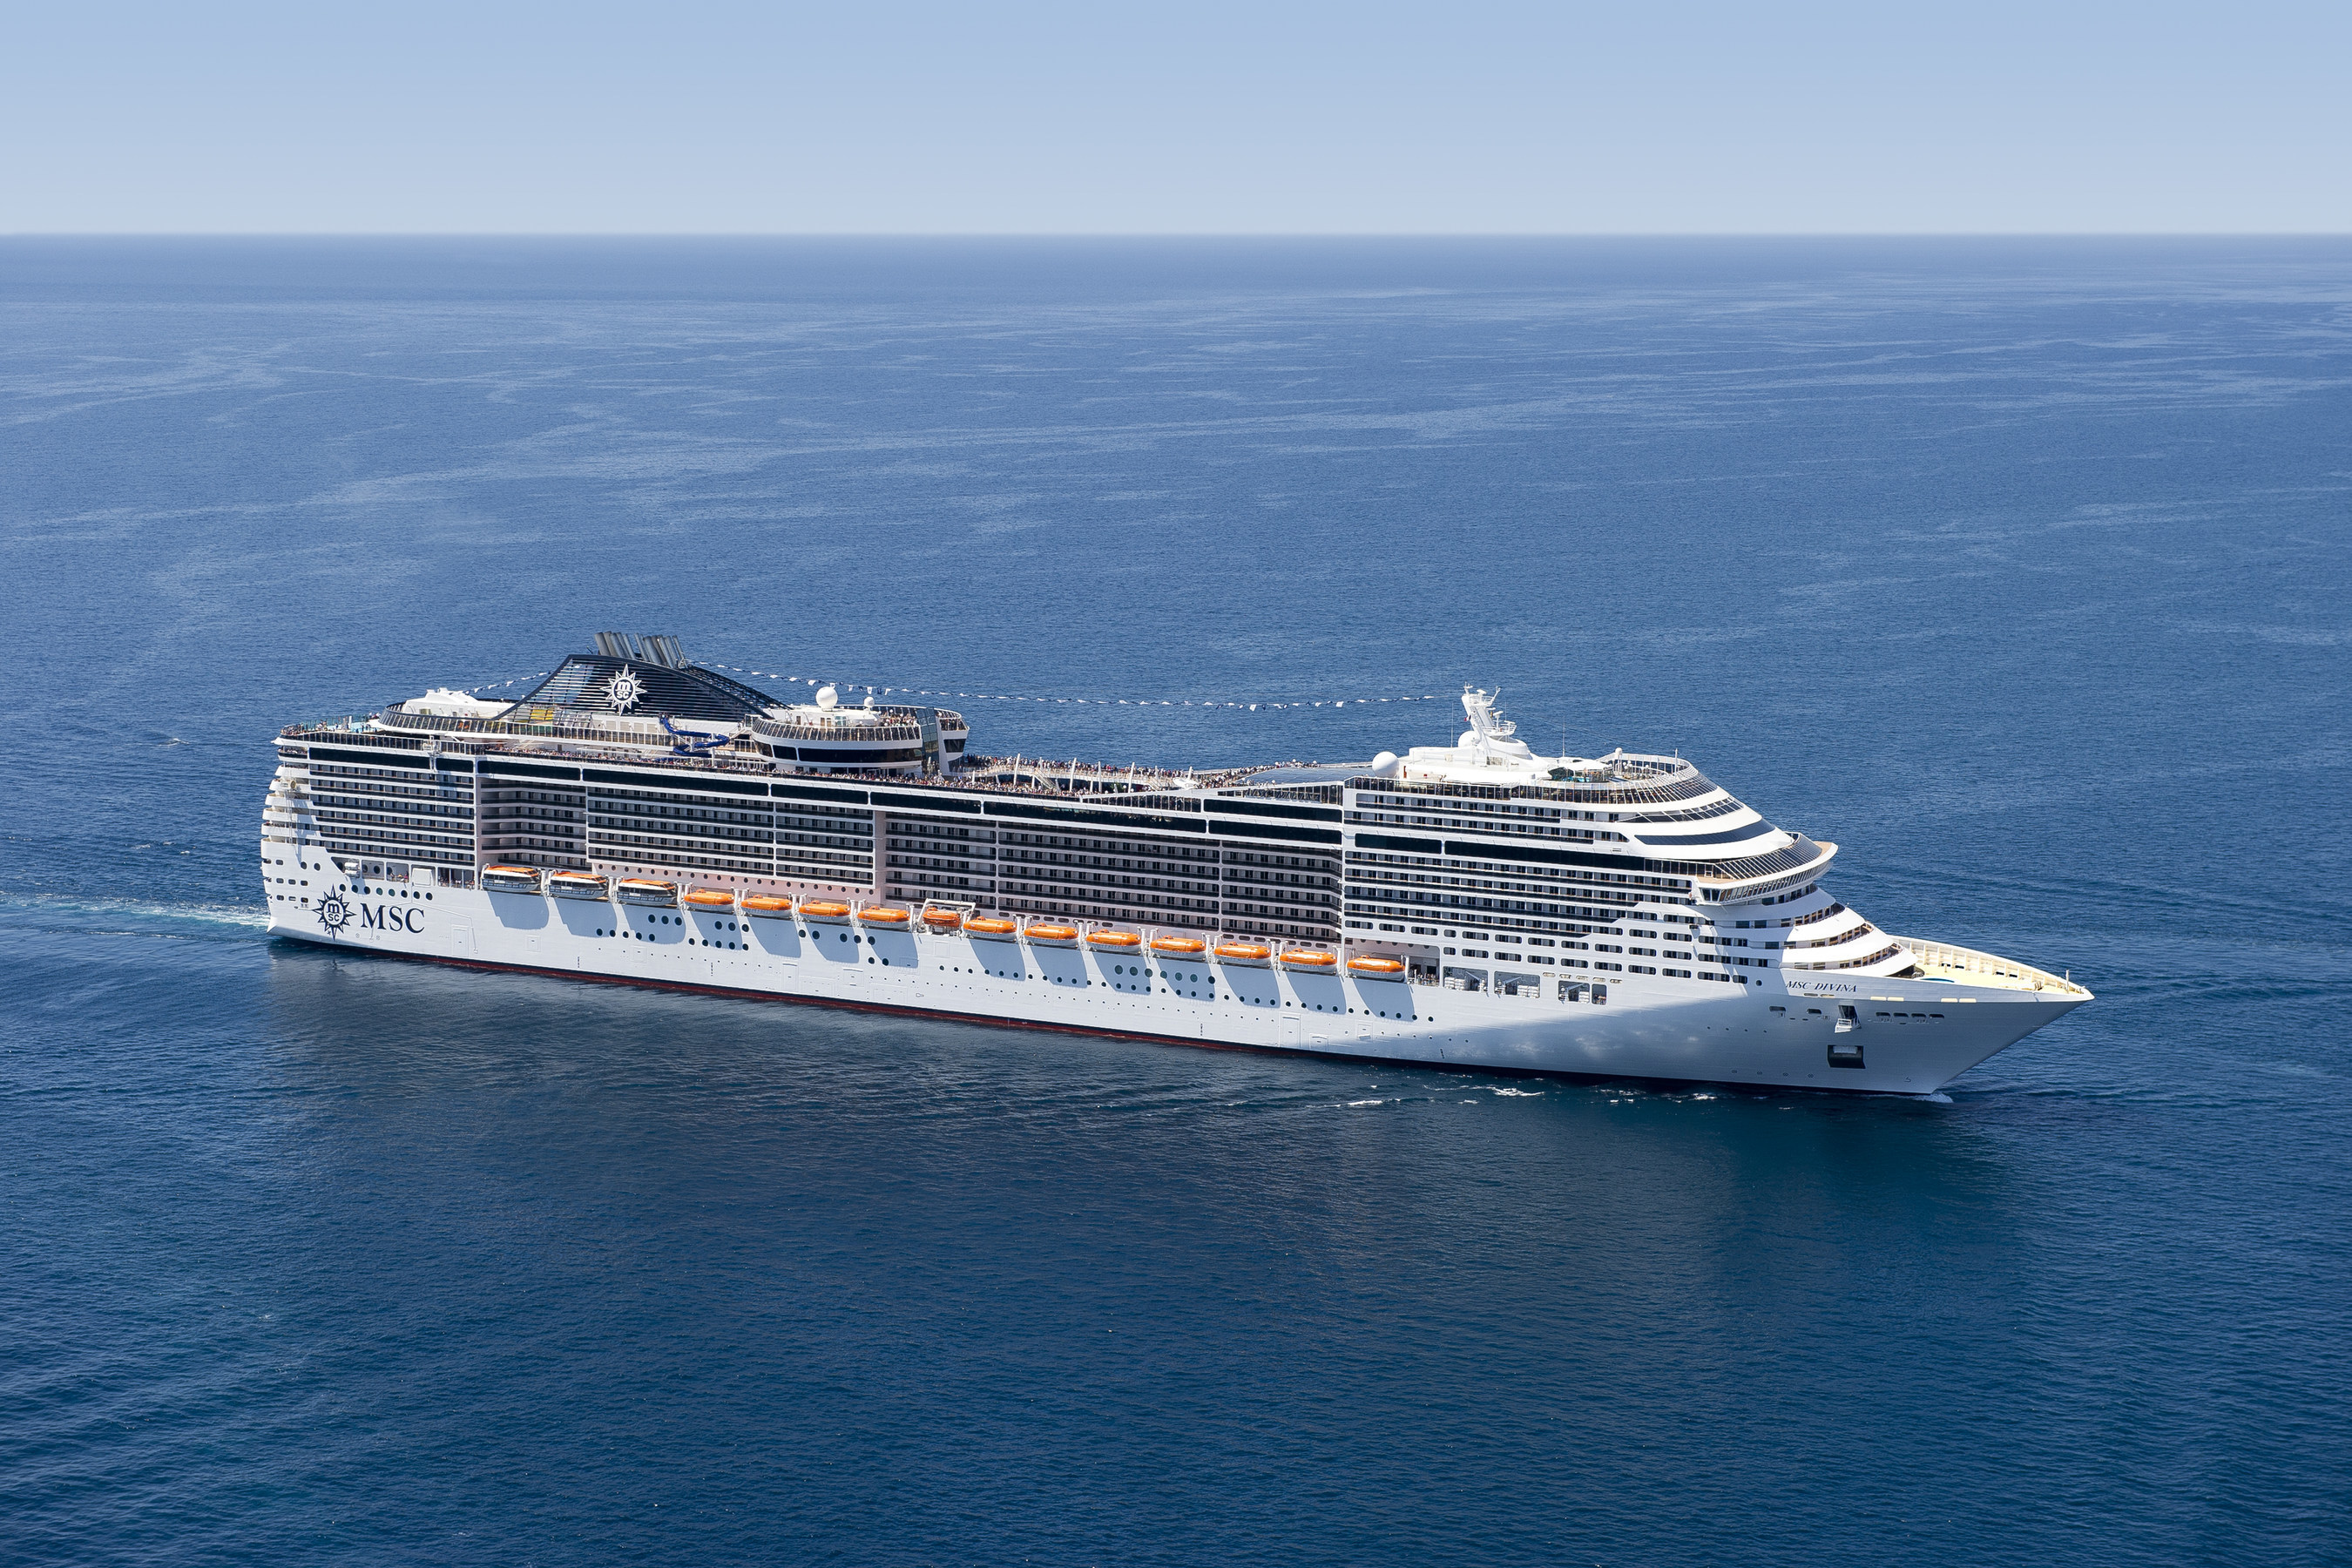 MSC Divina, one of MSC Cruises' most ultra-modern and elegant cruise ships, will sail year-round from Miami starting November 2015.